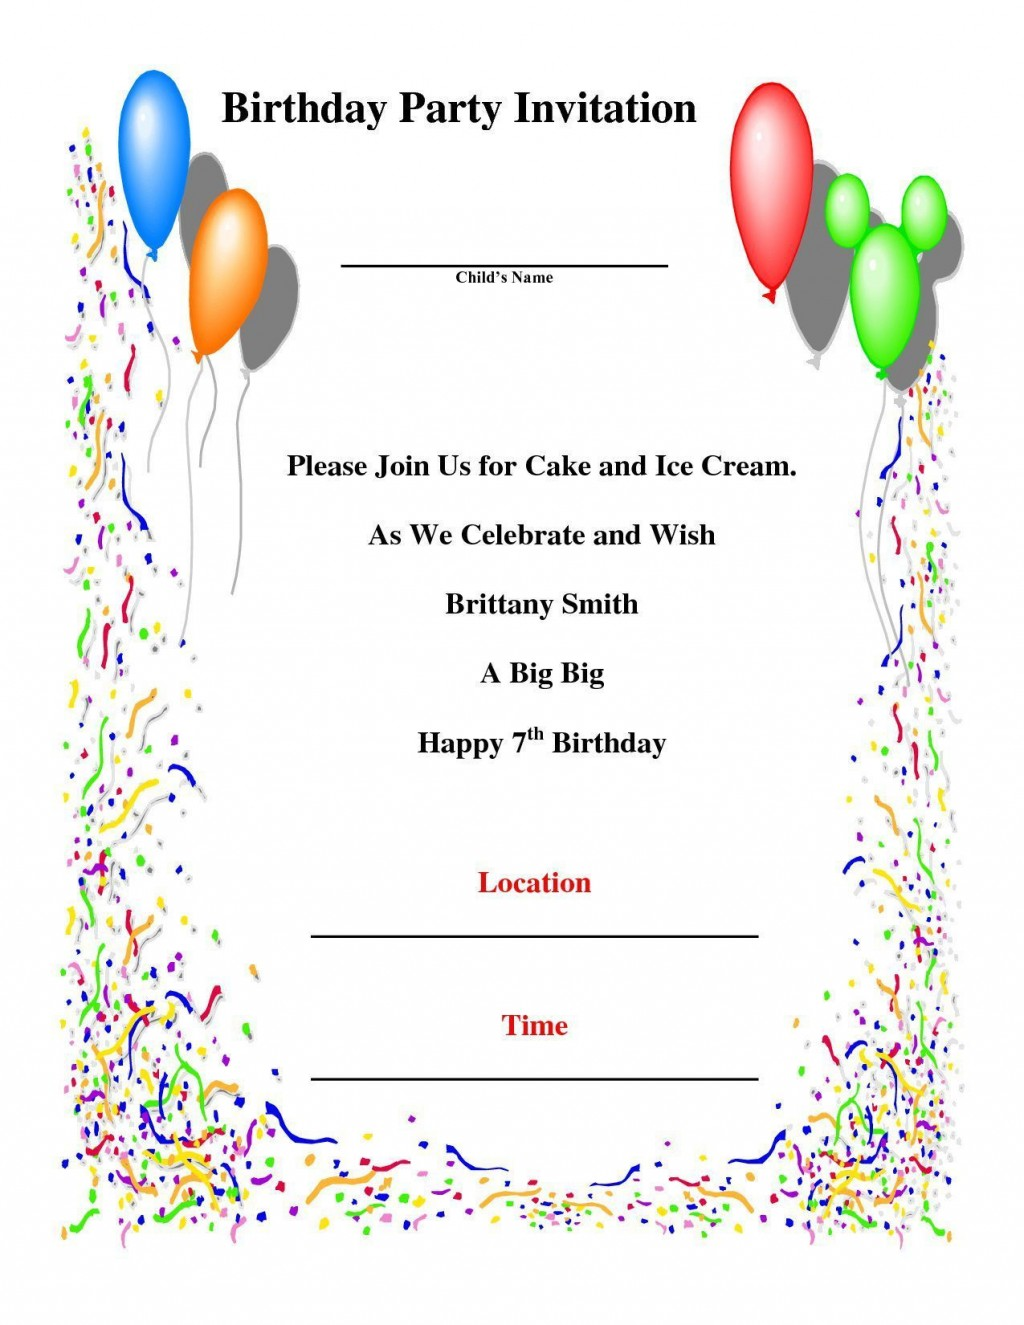 006 Magnificent Birthday Party Invitation Template Word Free High Resolution  Download InviteLarge